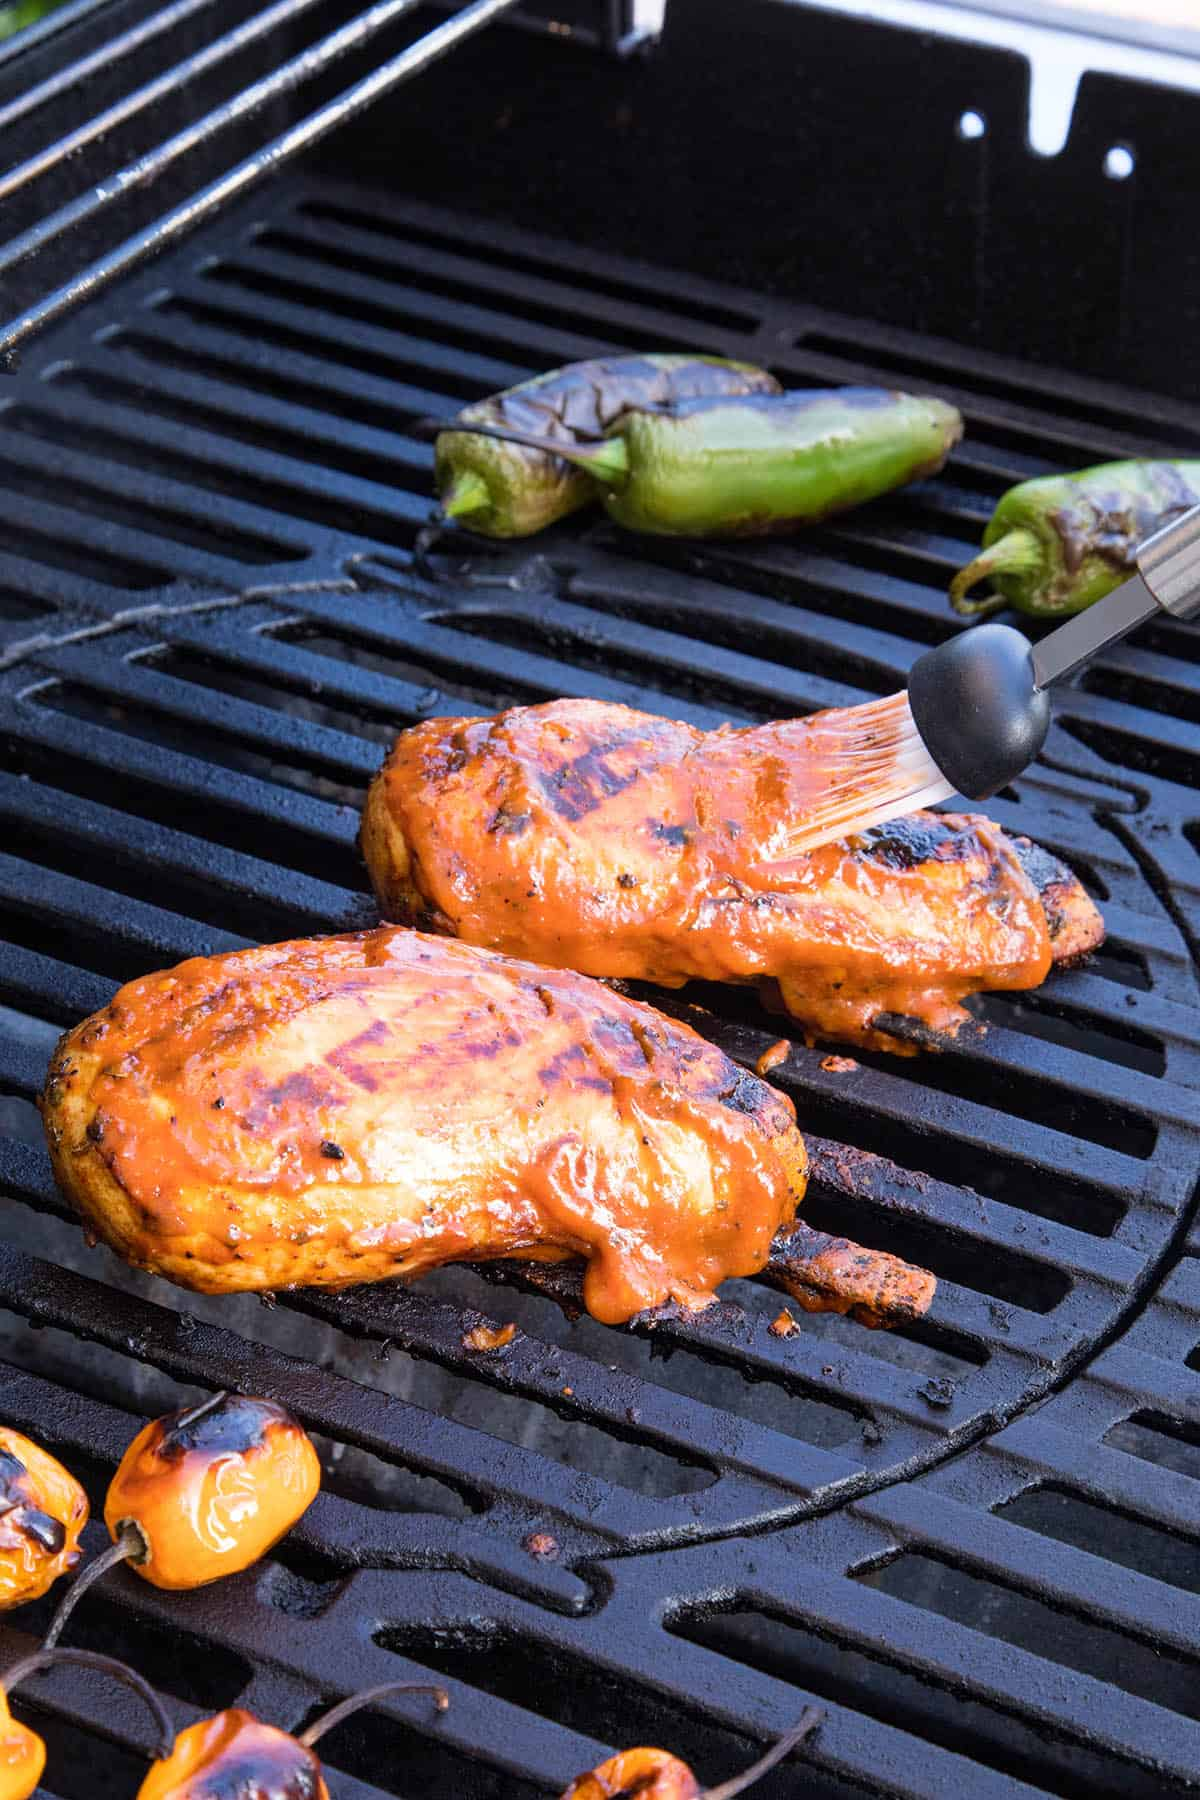 Saucing up the Mango Habanero BBQ Chicken